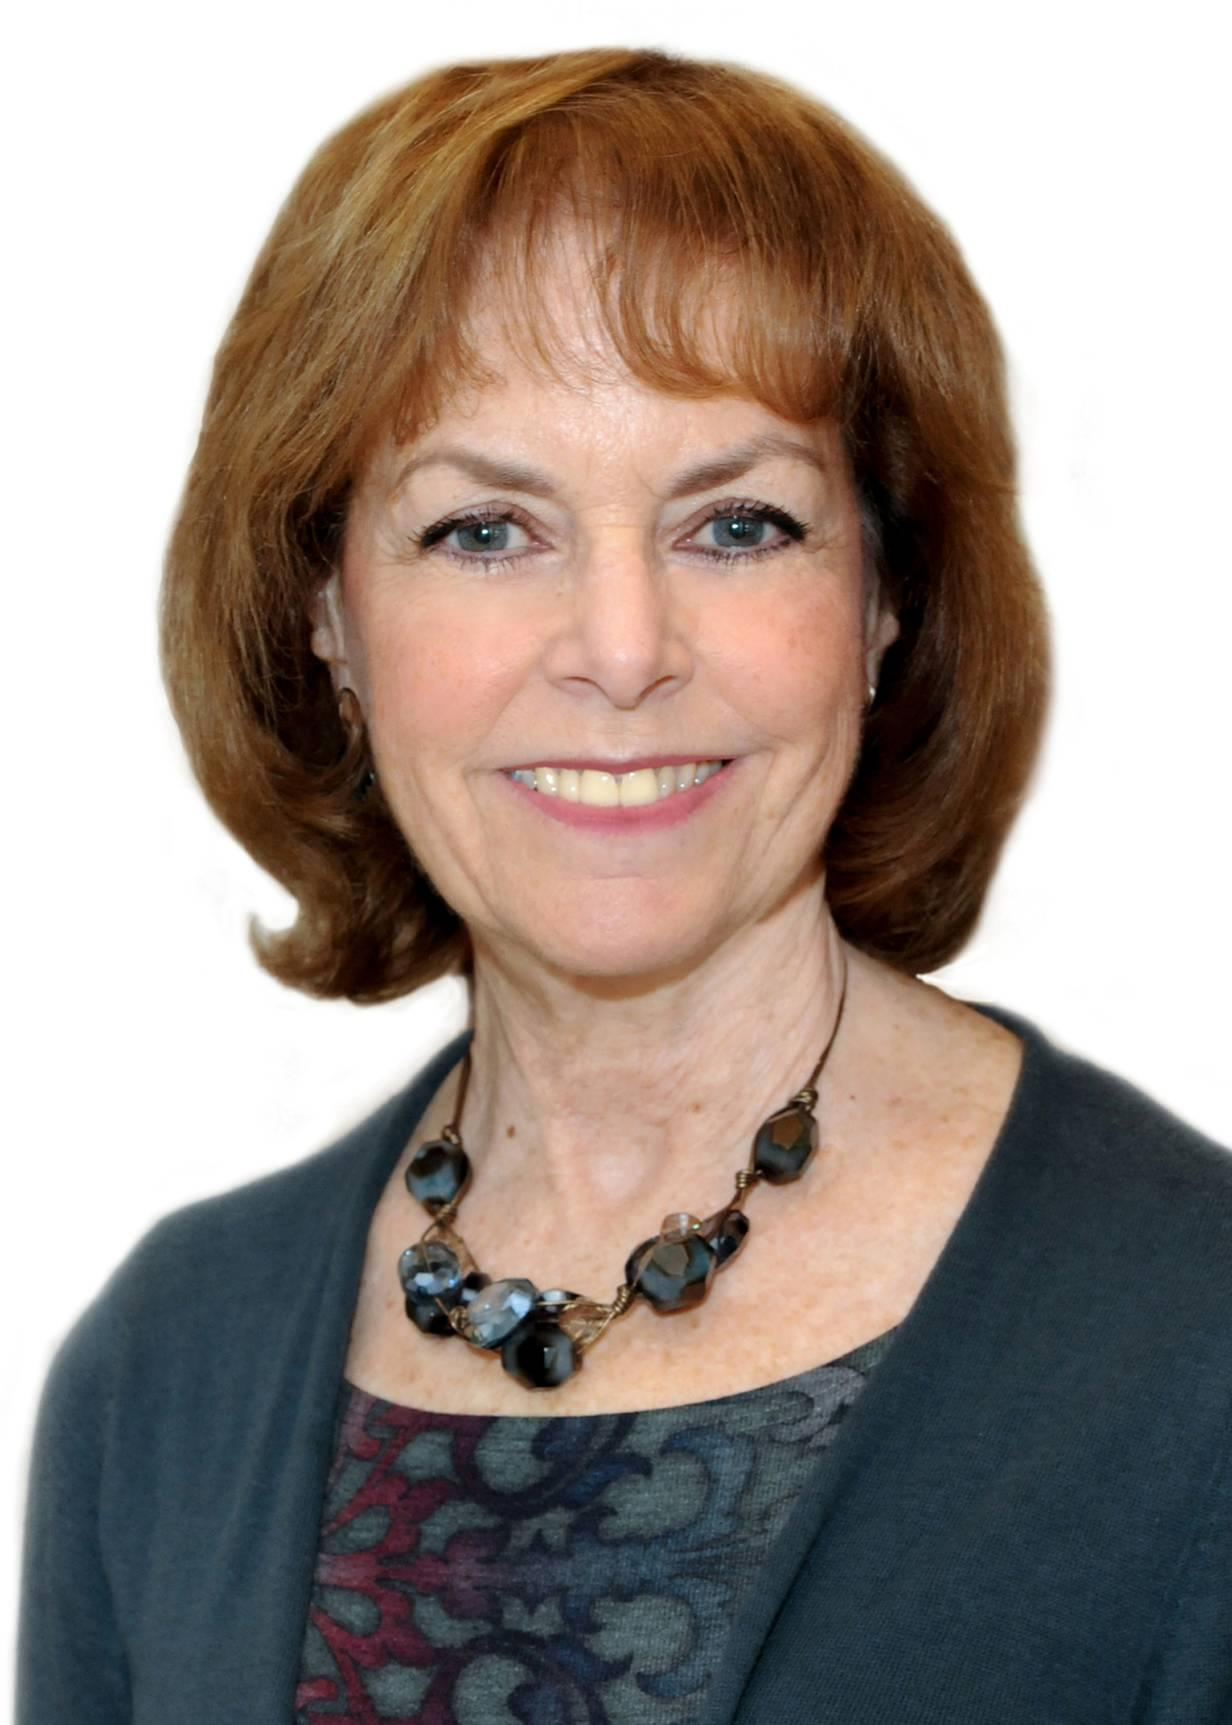 Beth Lown is Chief Medical Officer of the Schwartz Center for Compassionate Healthcare, Boston MA,